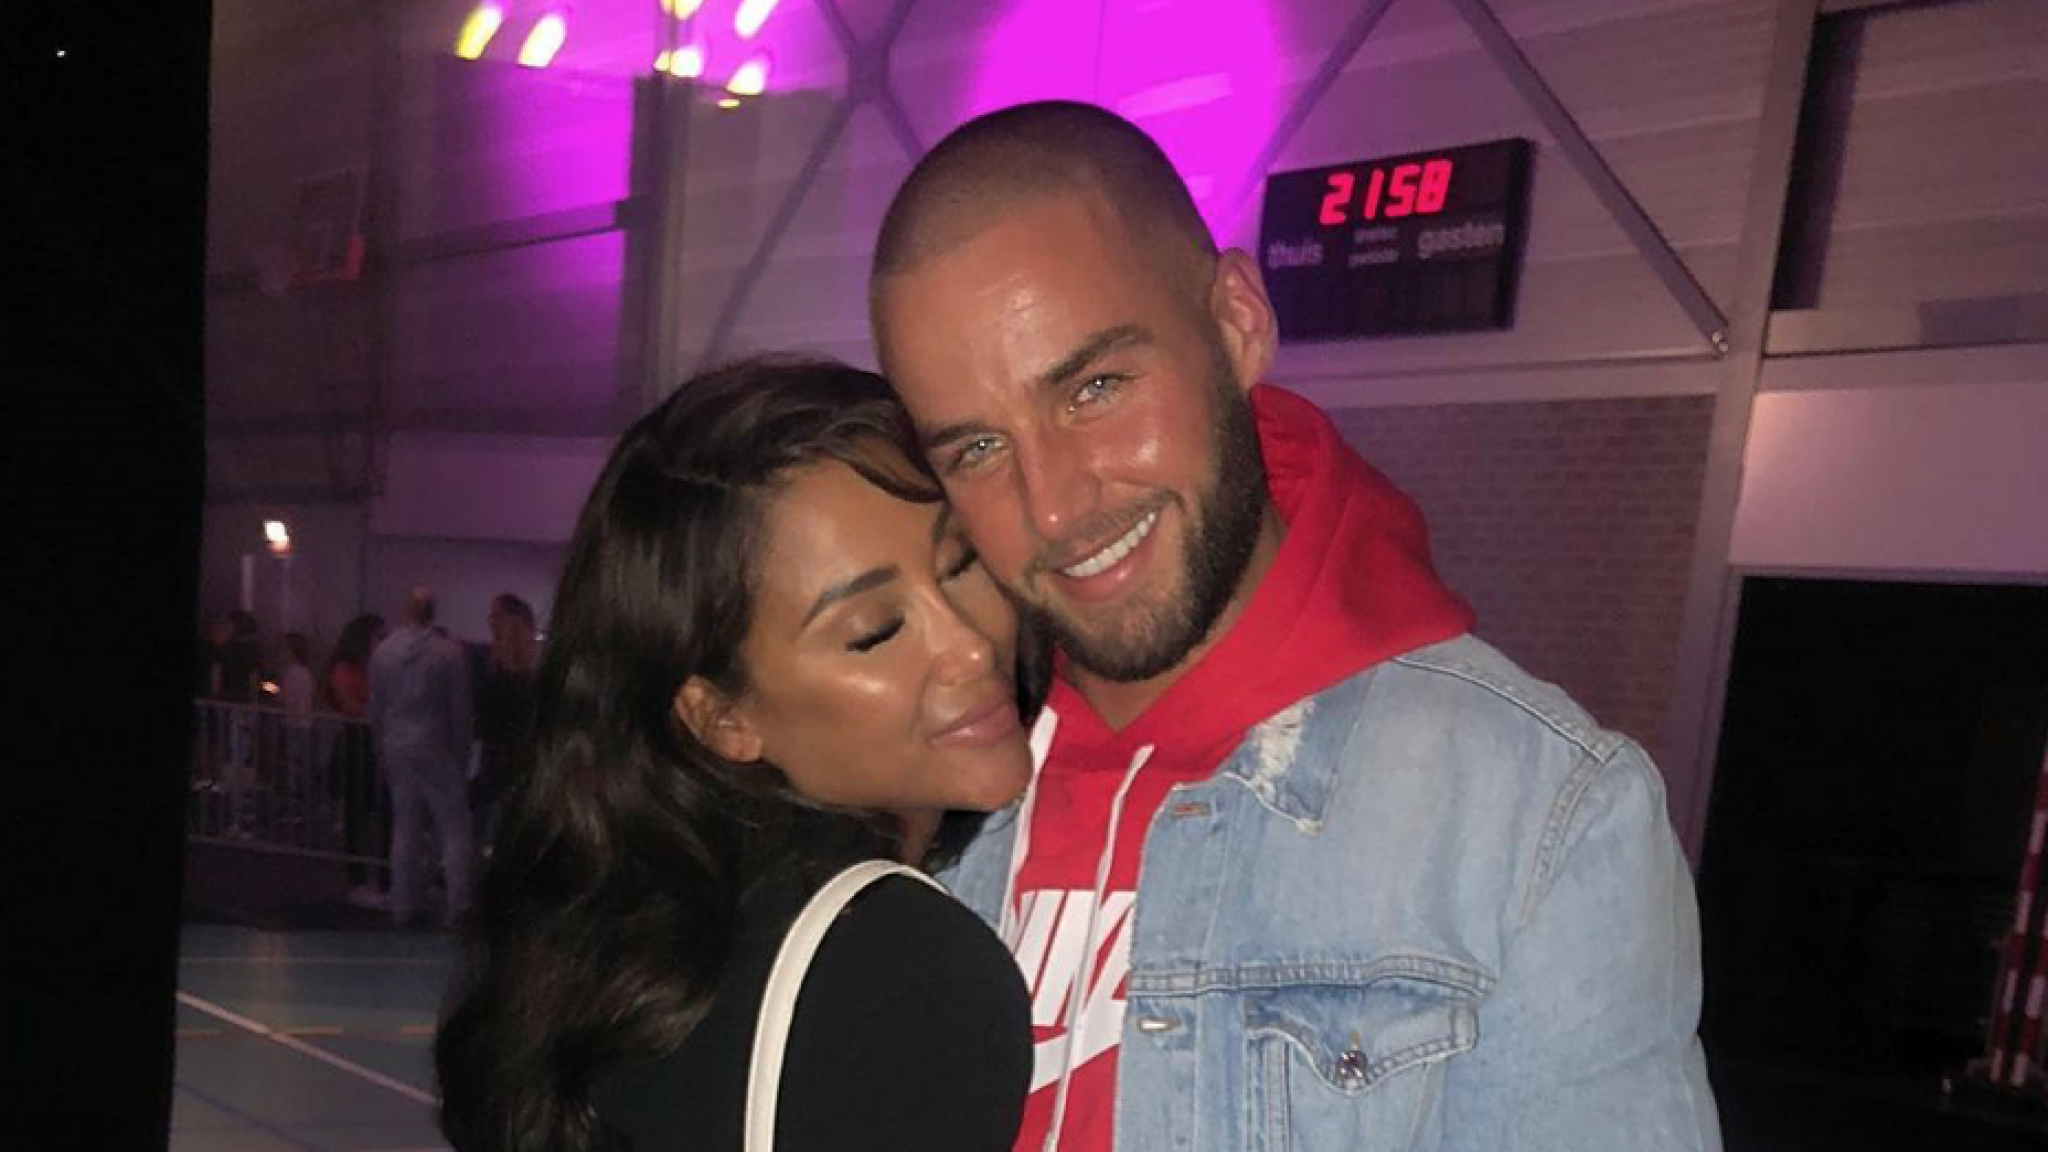 Donnie Roelvink's girlfriend declares love with a special tattoo